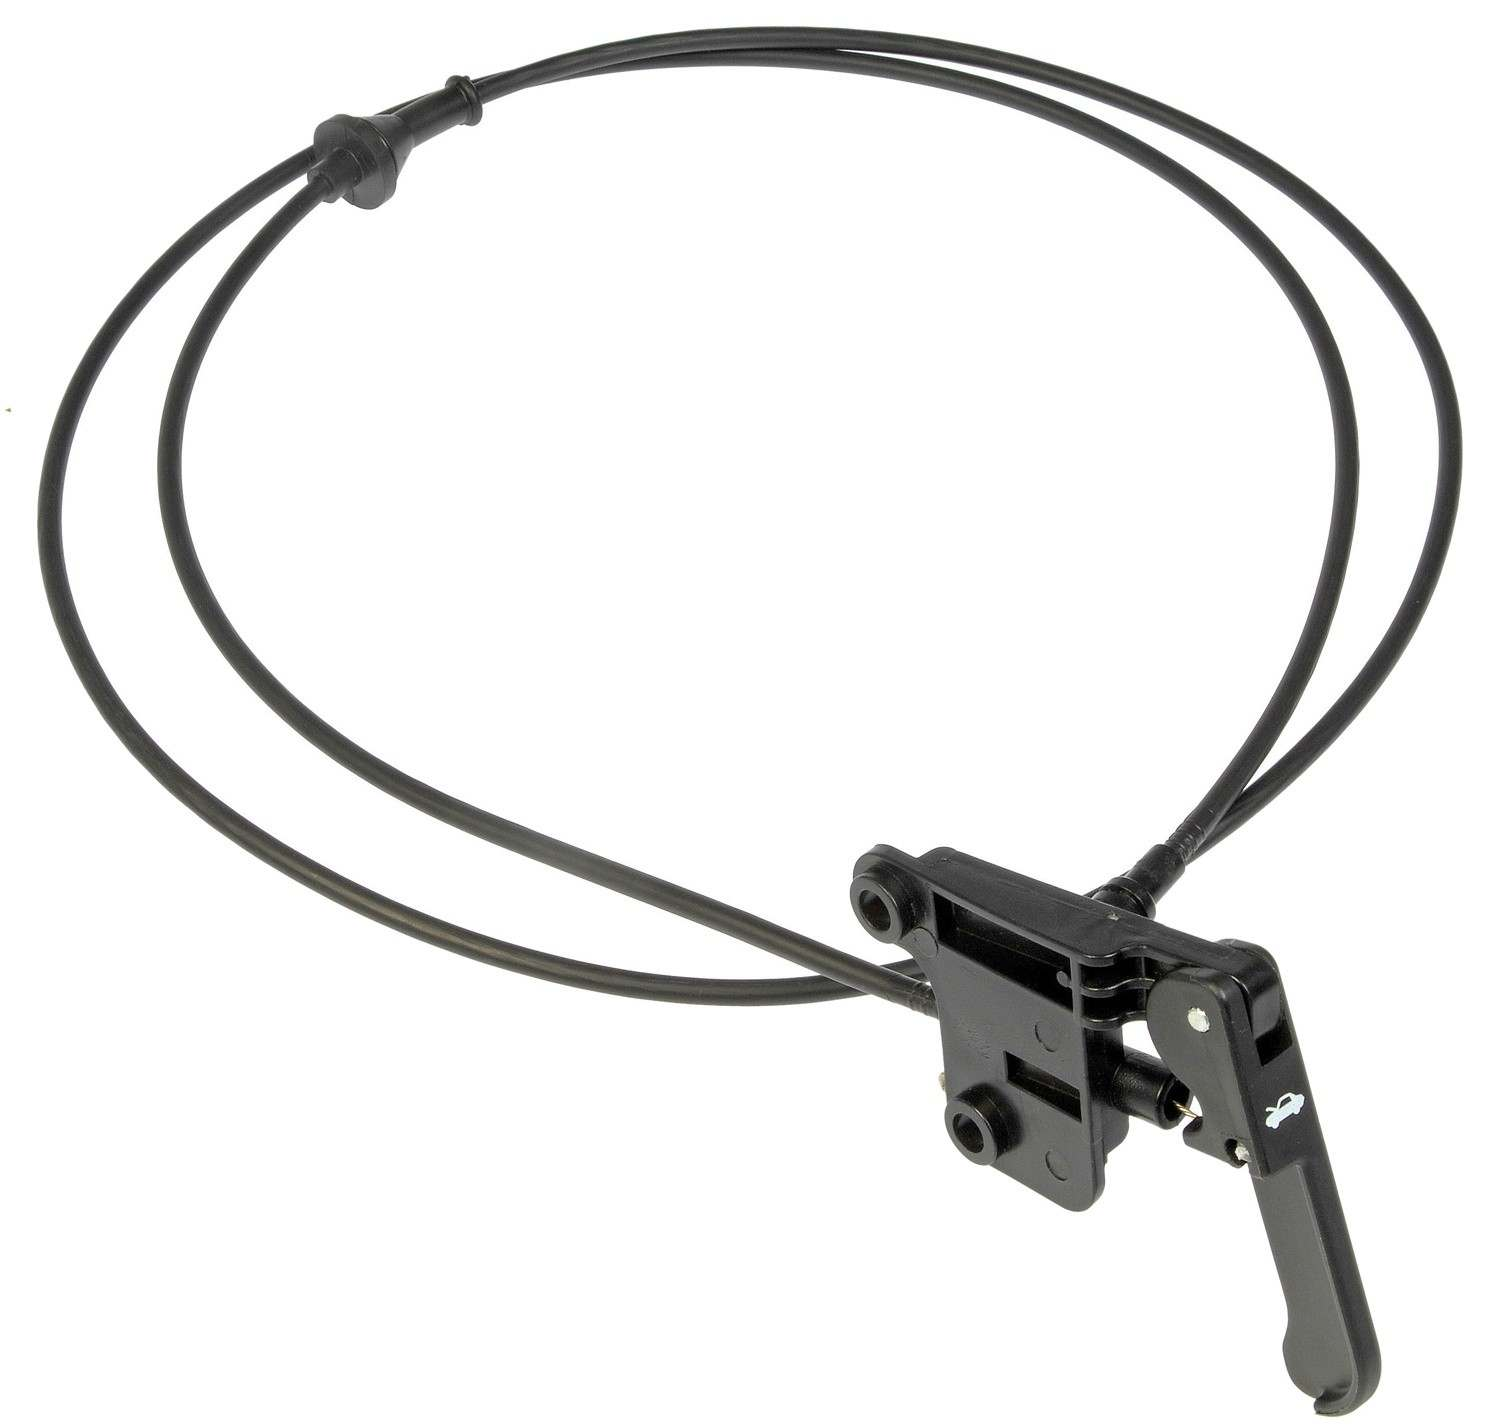 DORMAN OE SOLUTIONS - Hood Release Cable - DRE 912-001